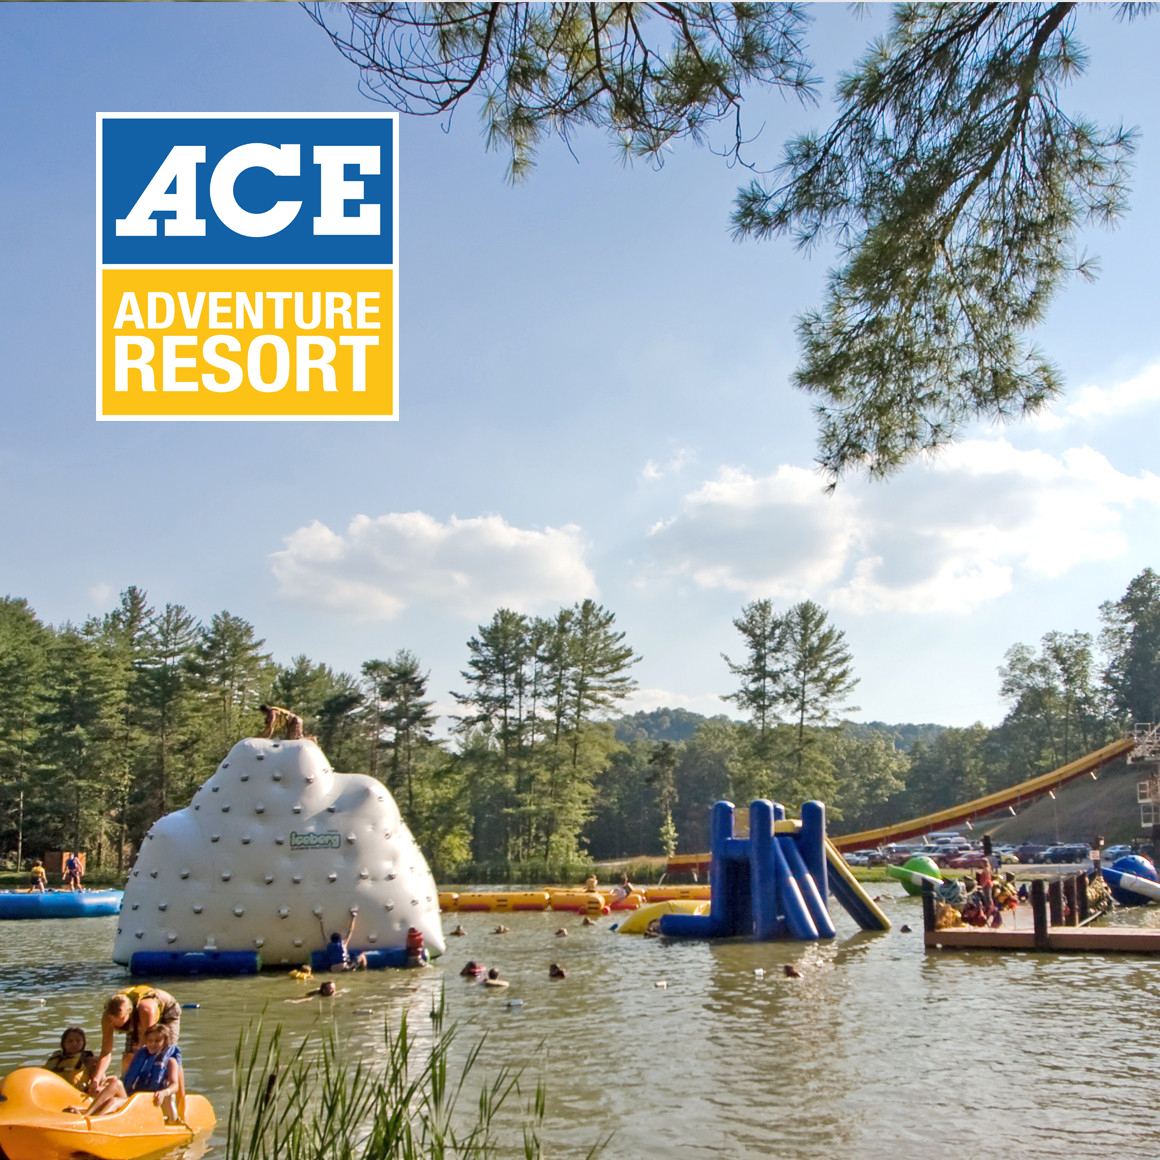 Ace Adventure Resort Almost Heaven West Virginia